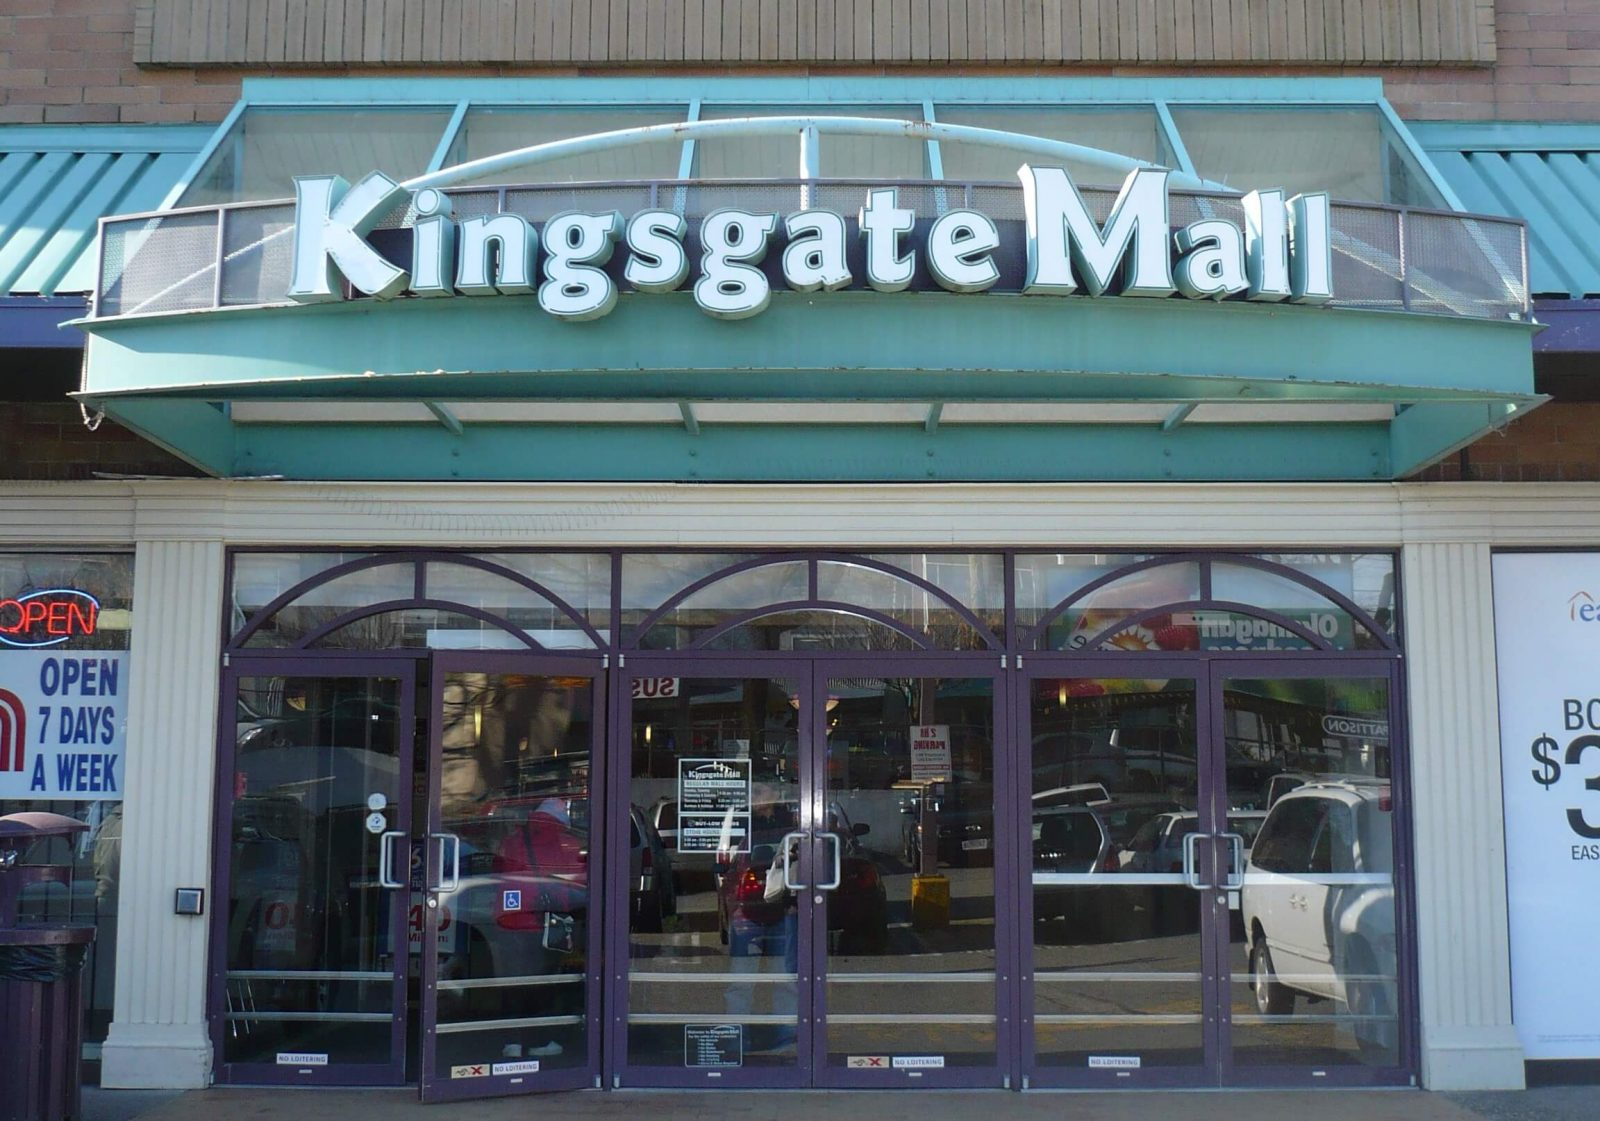 Kingsgate Mall, Mount Pleasant, Vancouver